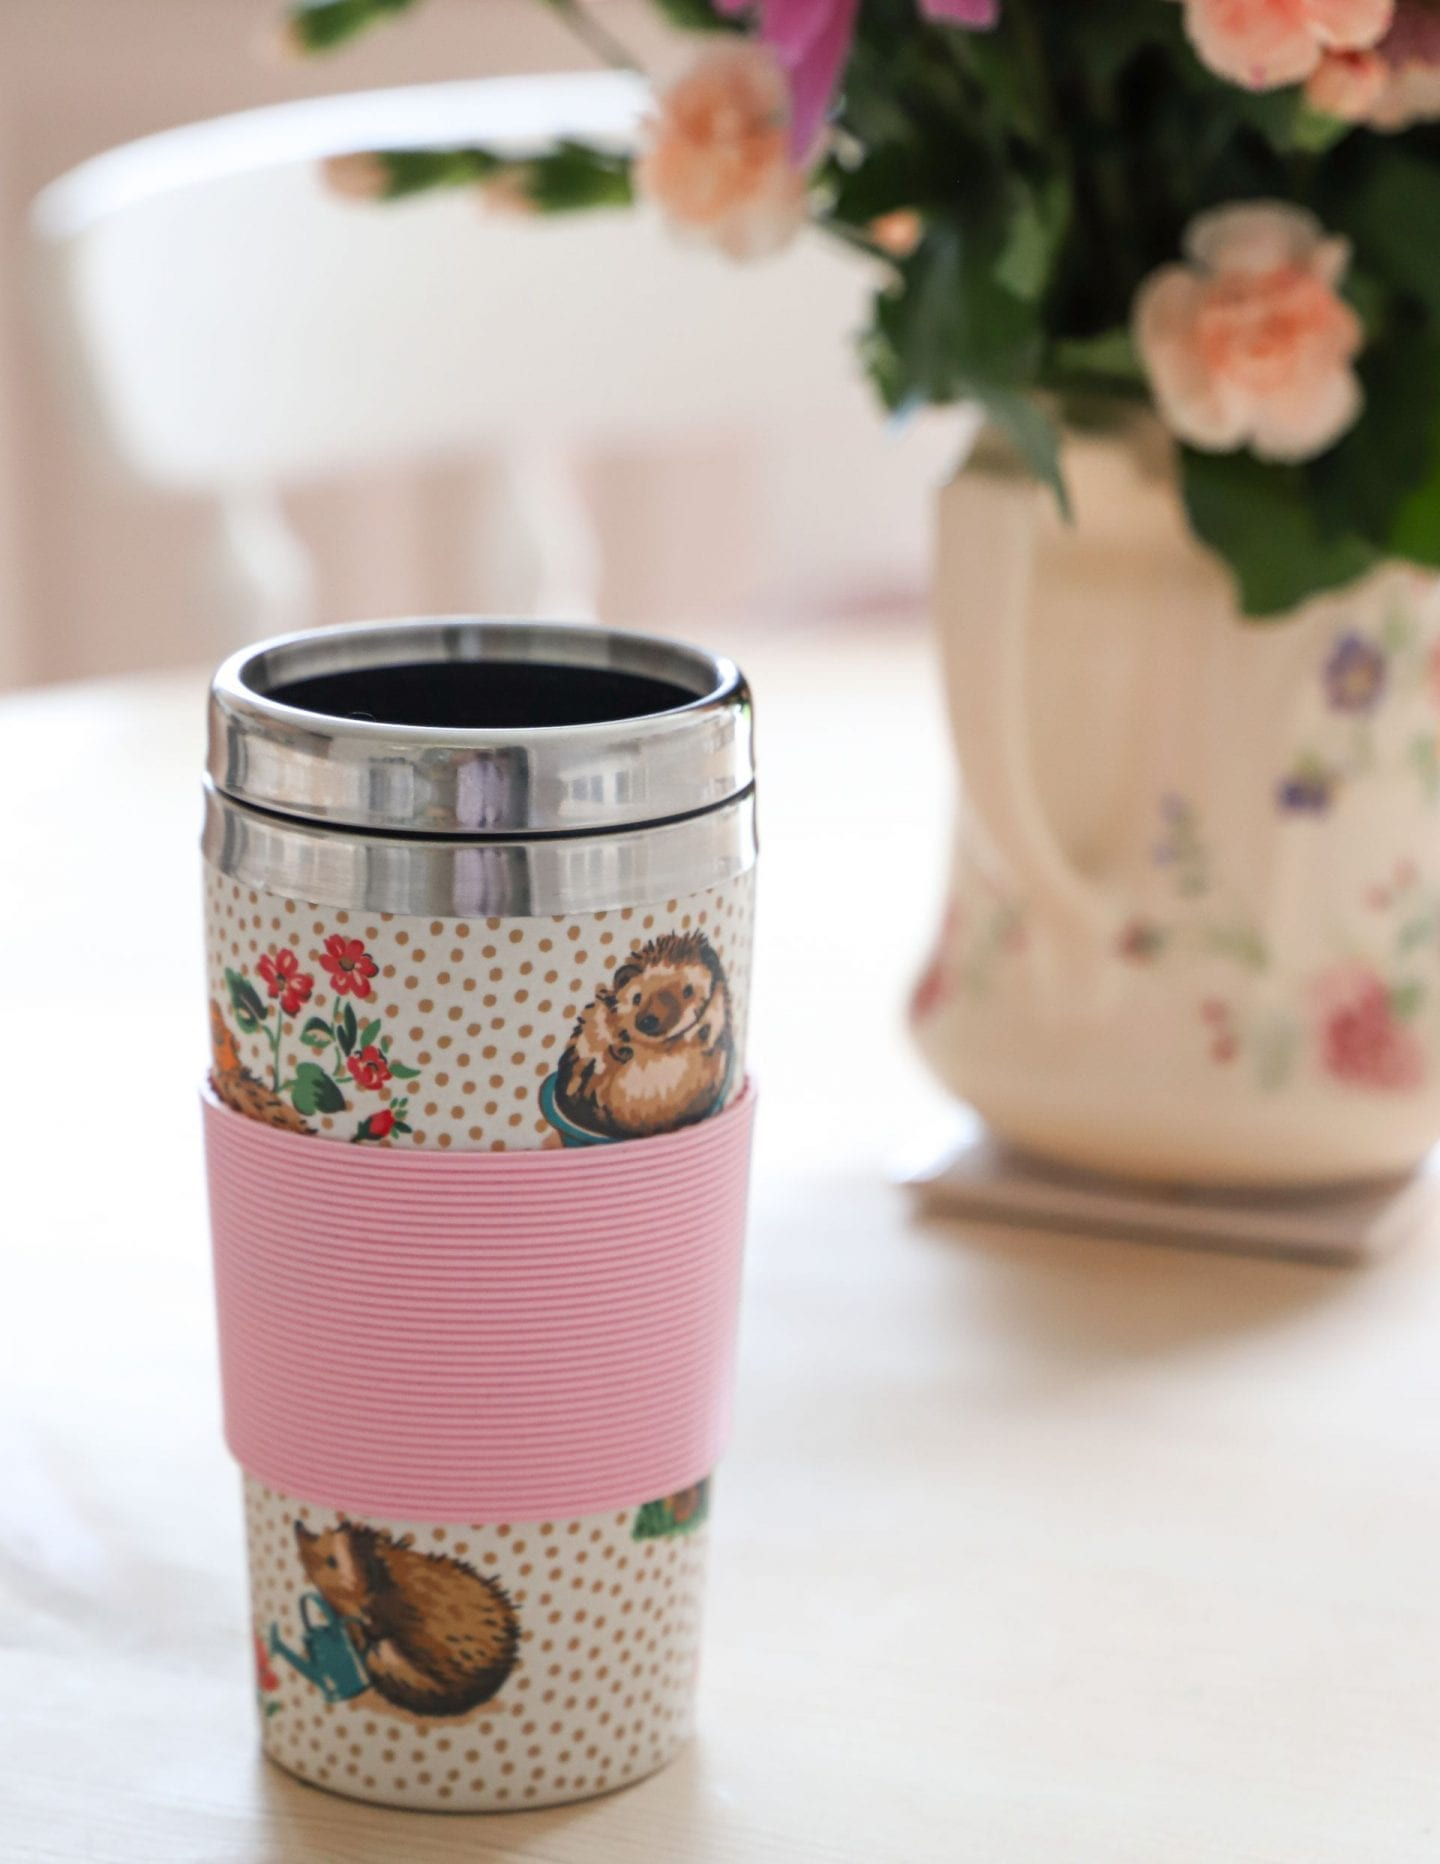 Cath Kidston at 60% off